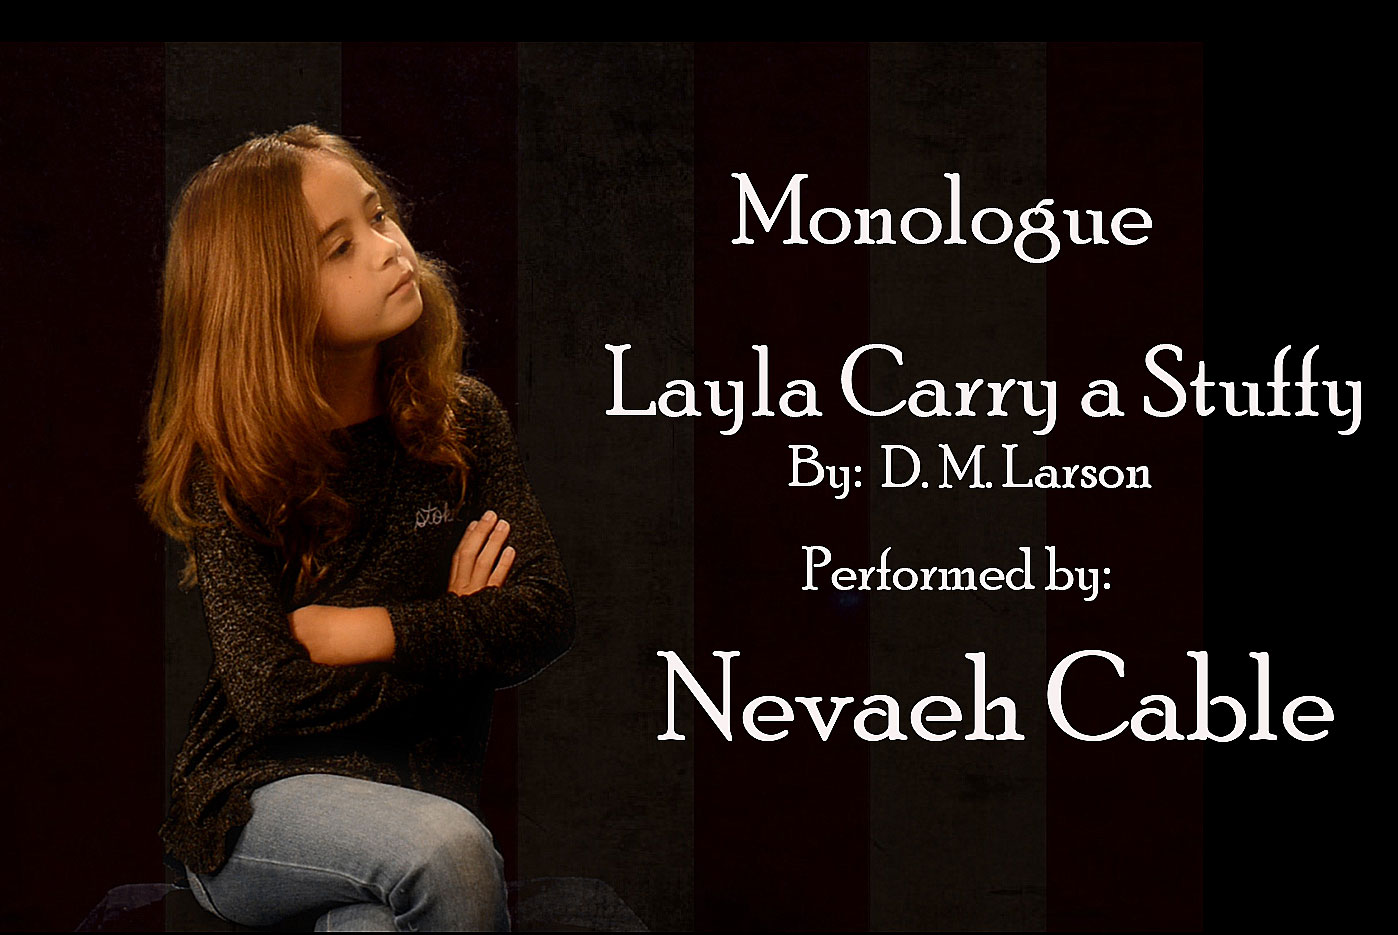 Carry a Stuffy  Monologue performed by Nevaeh Cable